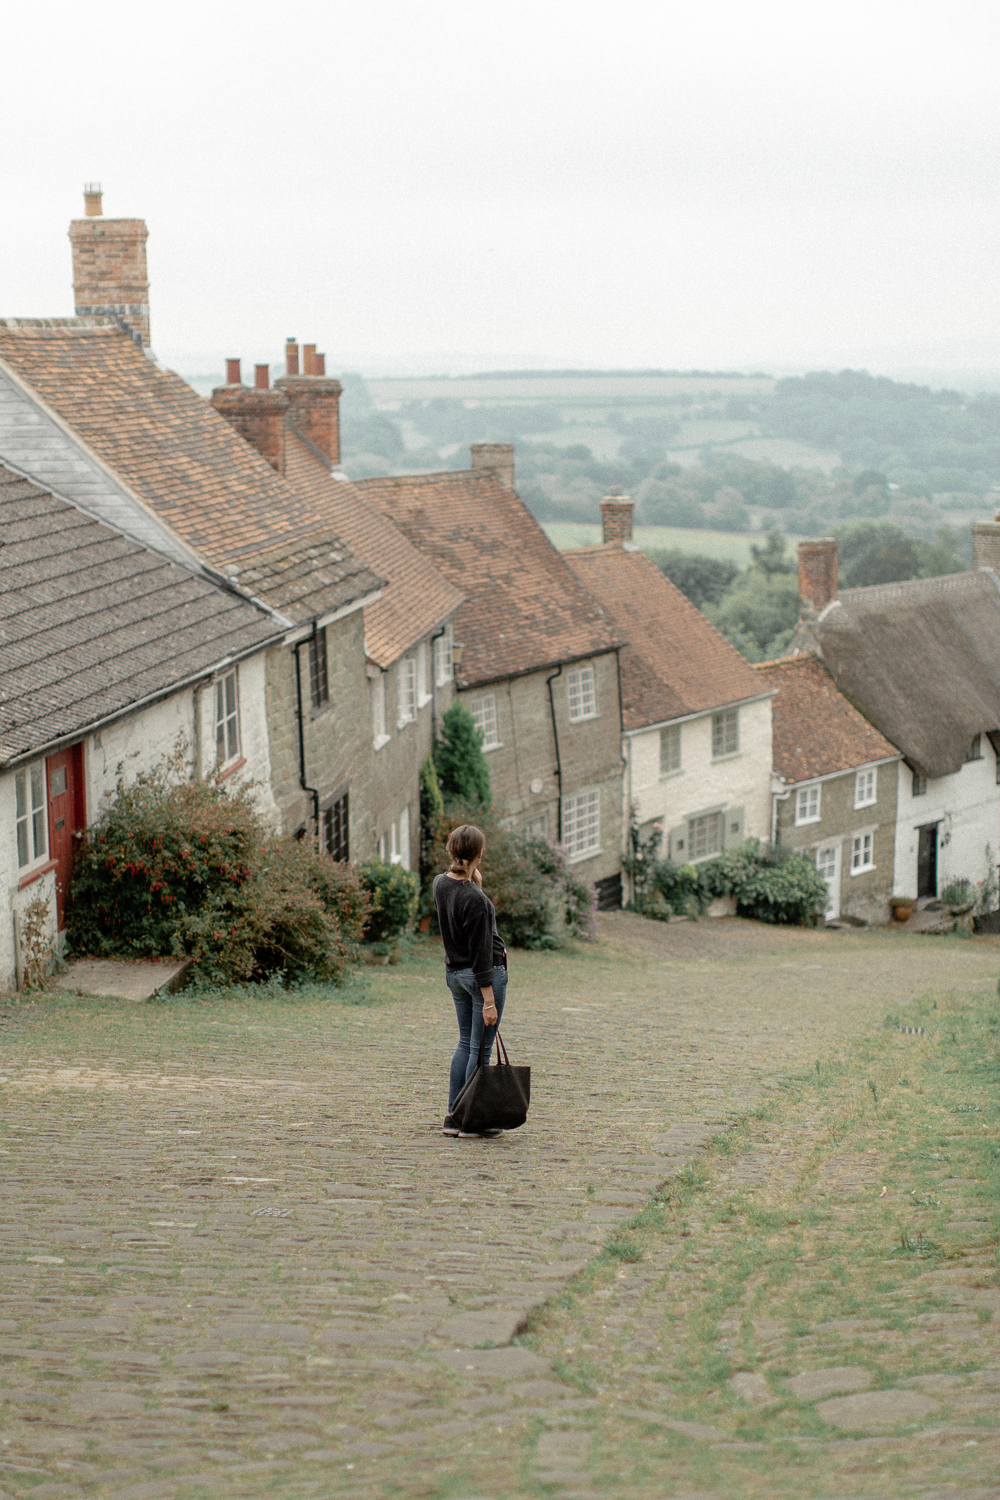 Gold Hill, Shaftesbury, UK (replace image with web res)